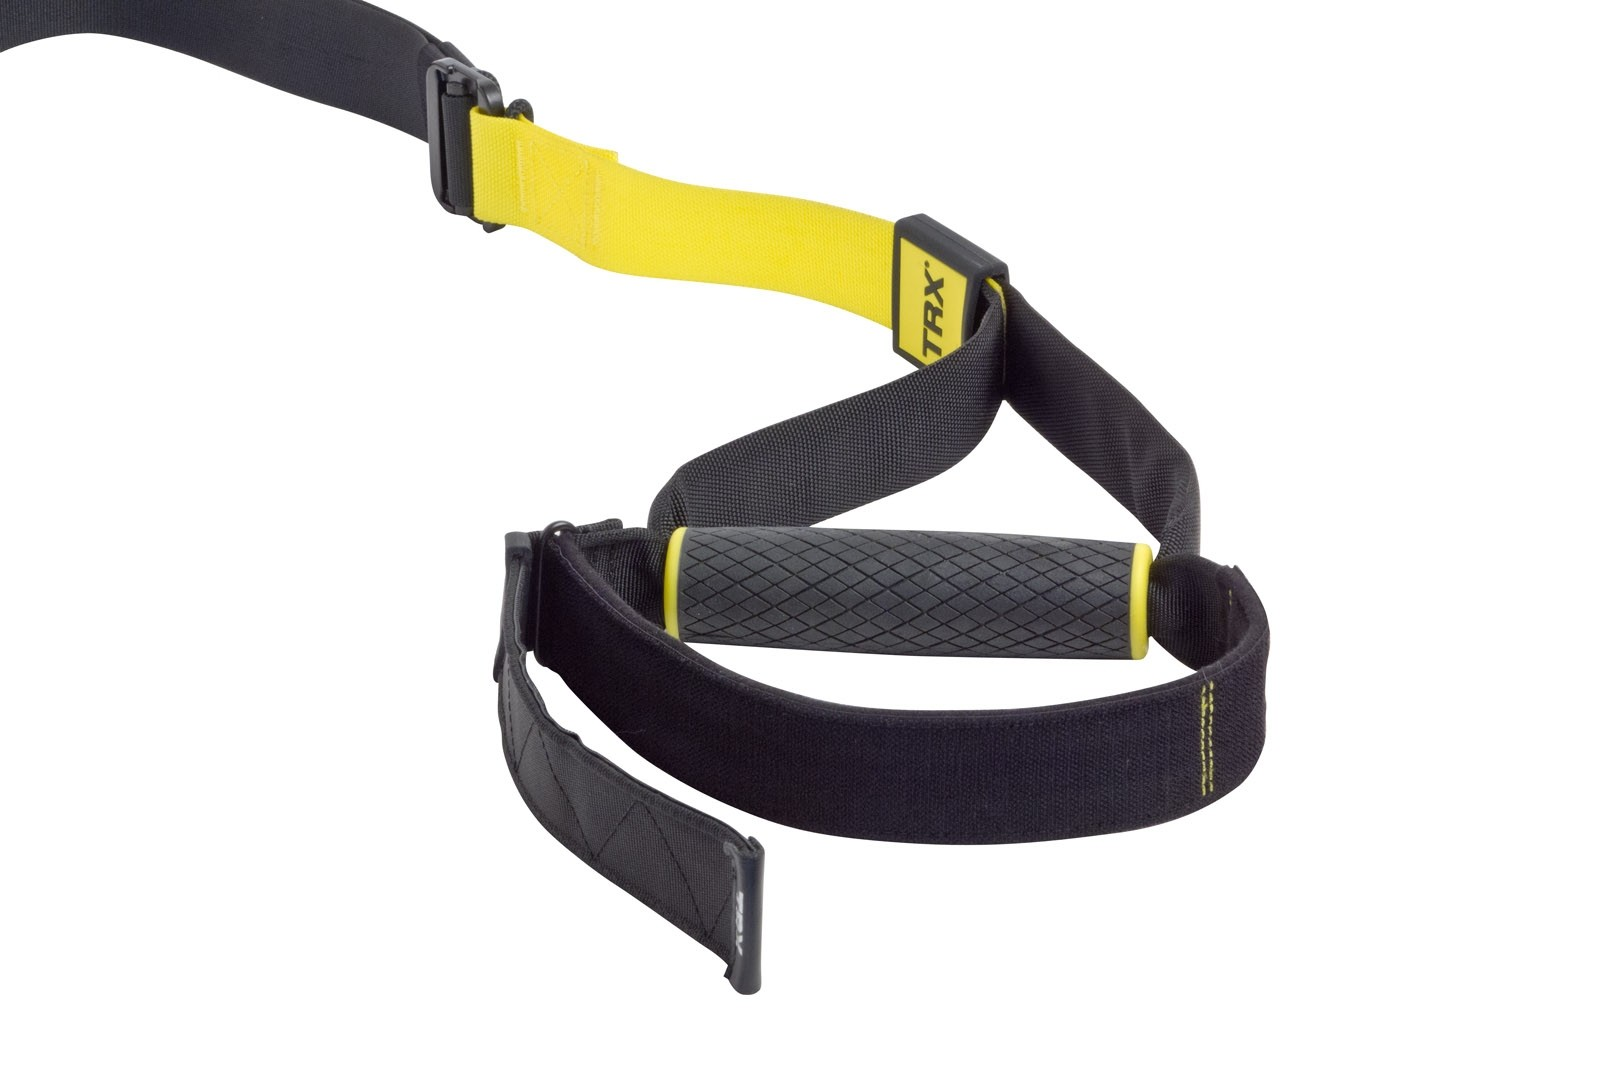 TRX Commercial Suspension CLUB 4 Training Kit xHockeyProducts.ca Canada